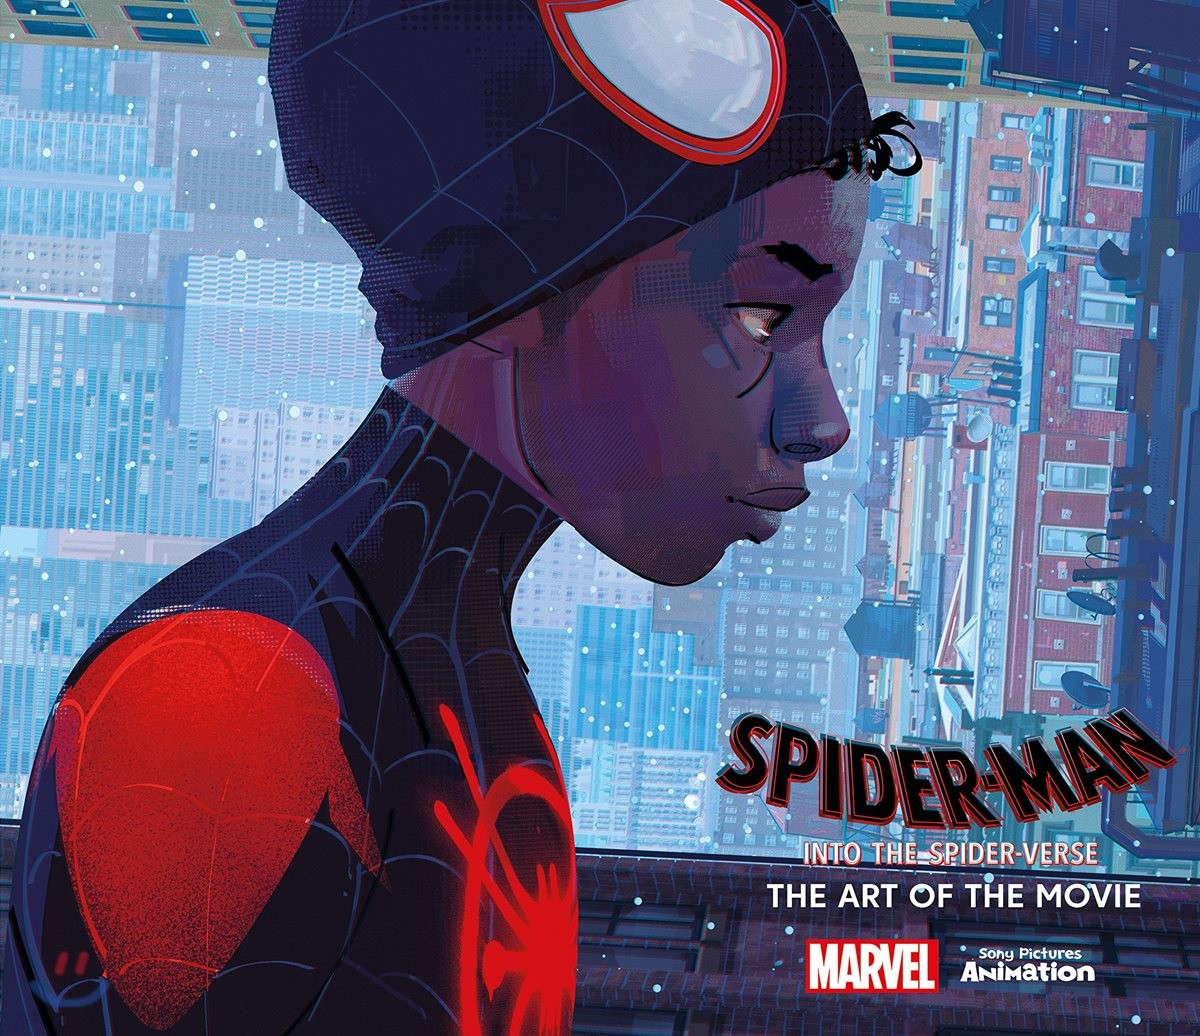 Spider-Man : Into the Spider Verse : The Art of the Movie : 스파이더맨 : 뉴 유니버스 공식 컨셉 아트북